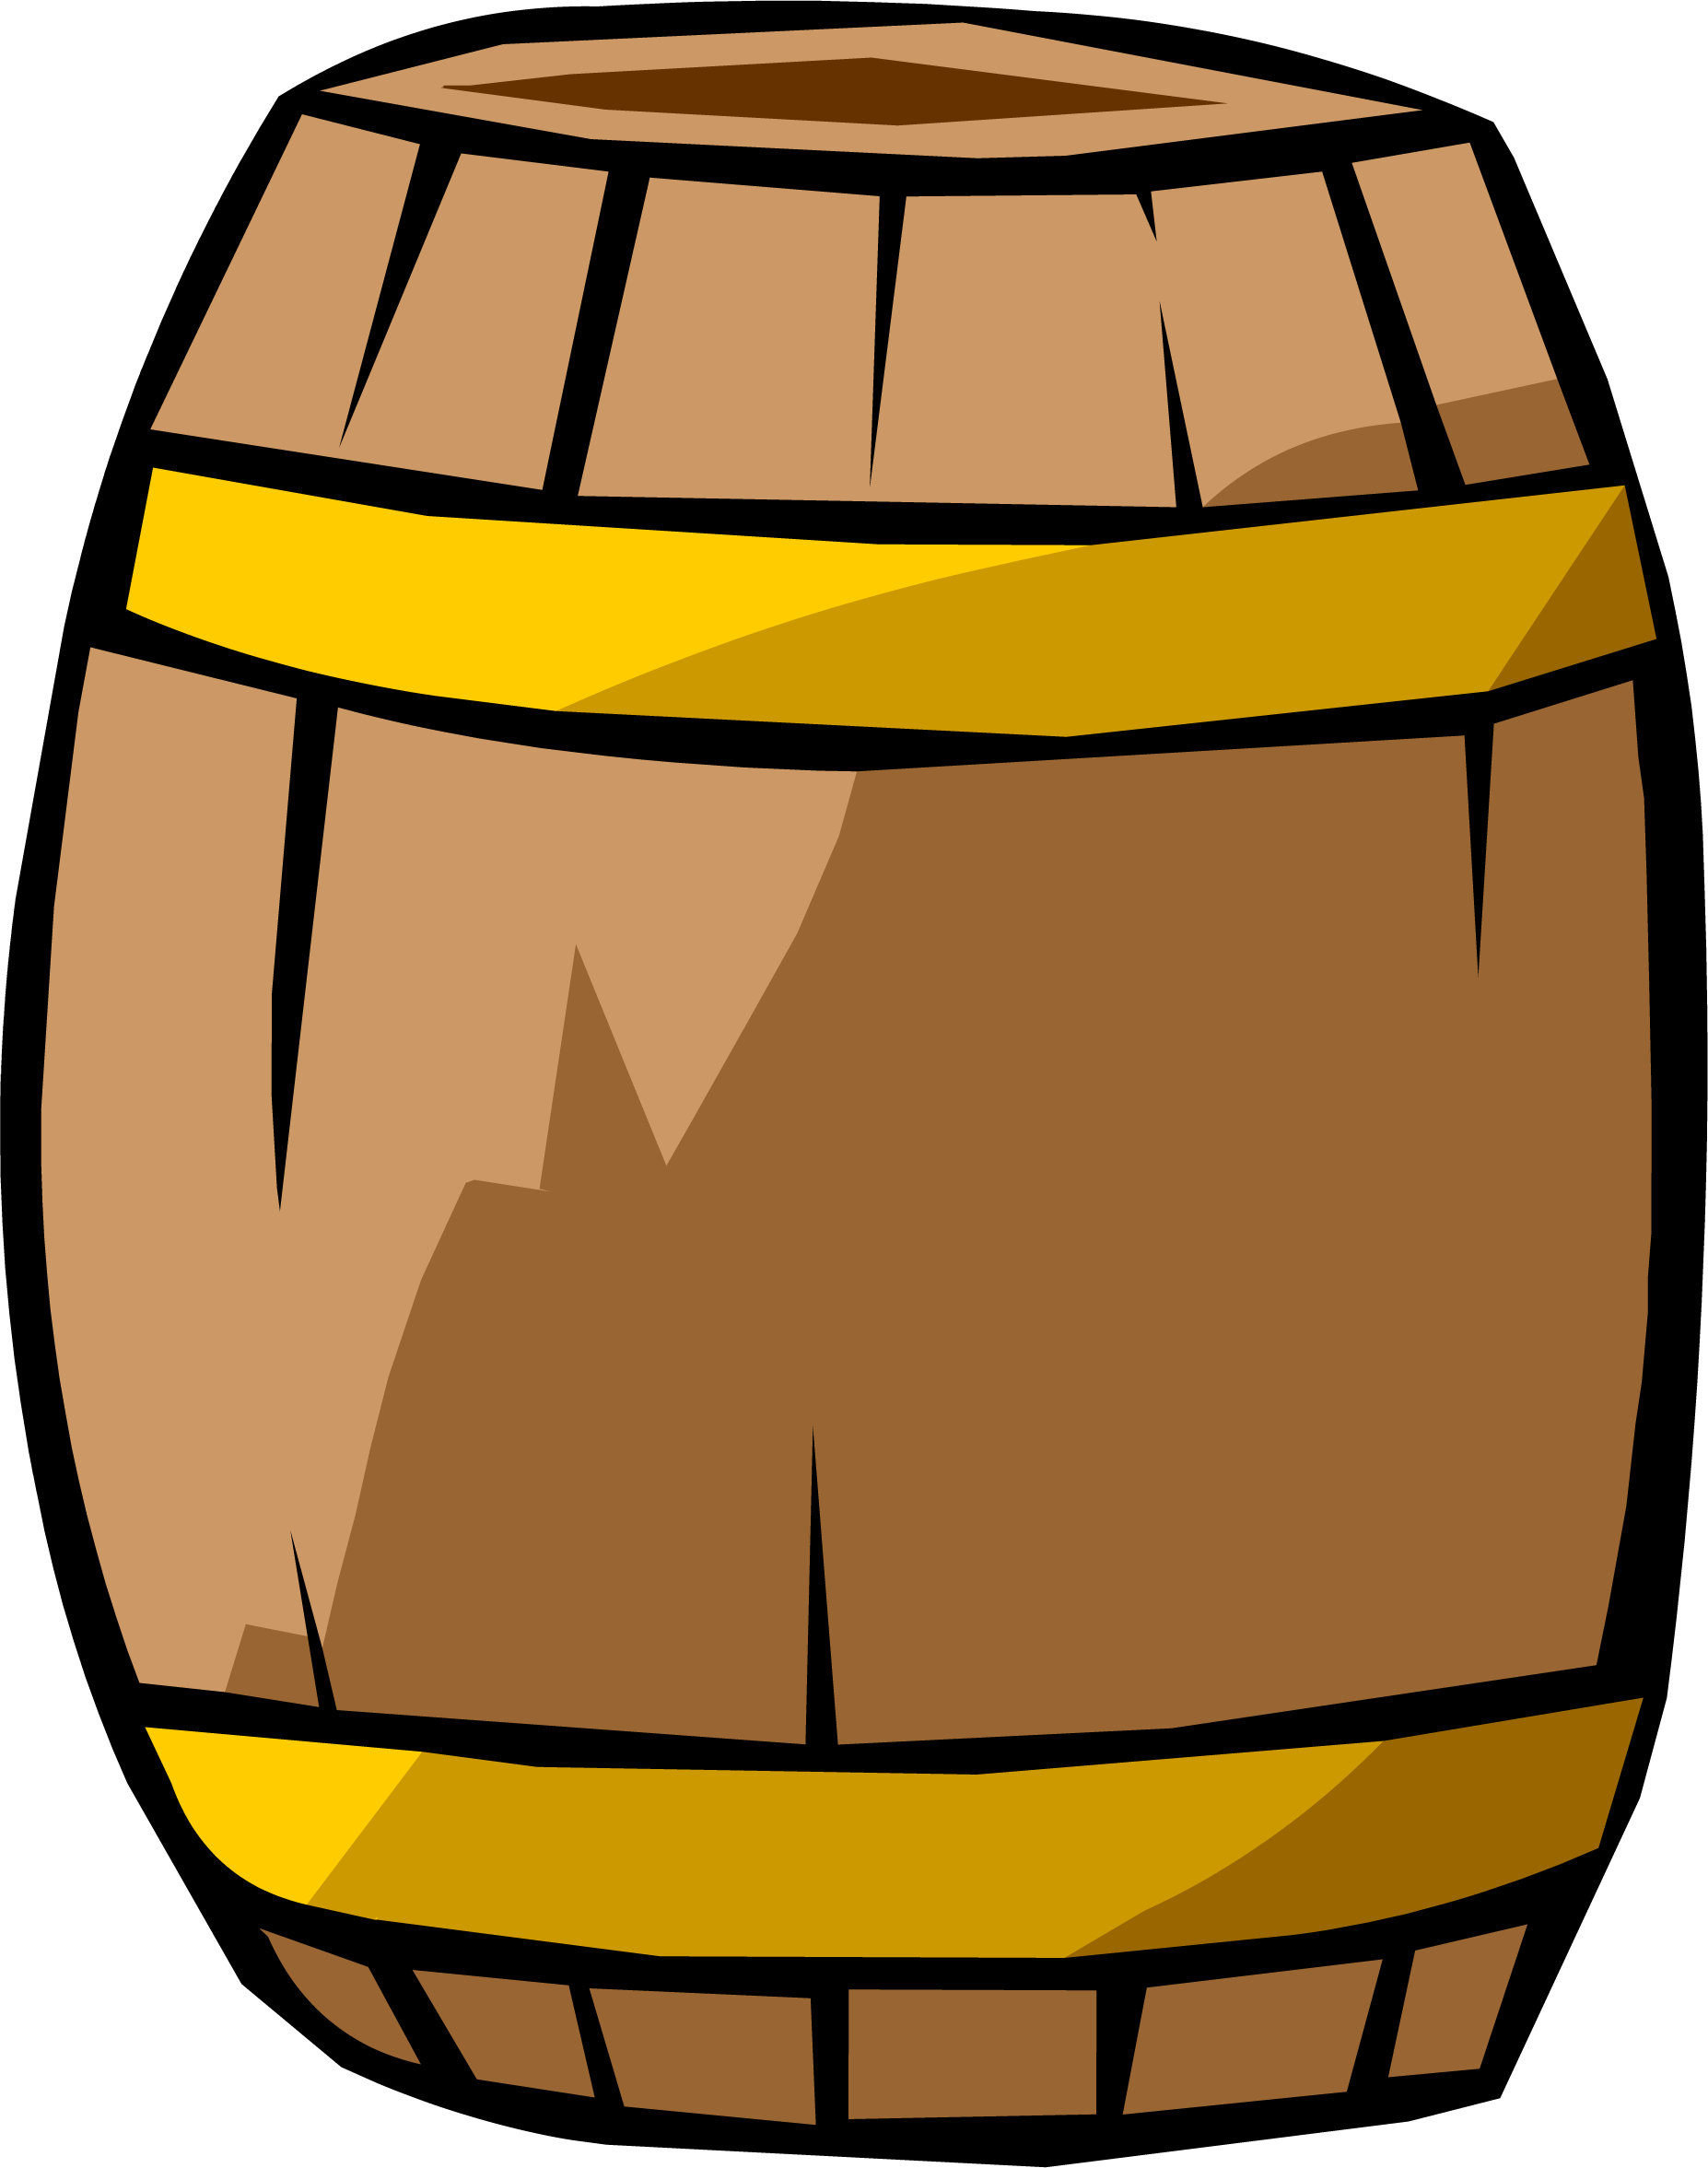 Free transparent clipart objects vector freeuse download Barrel Clipart transparent PNG - StickPNG vector freeuse download